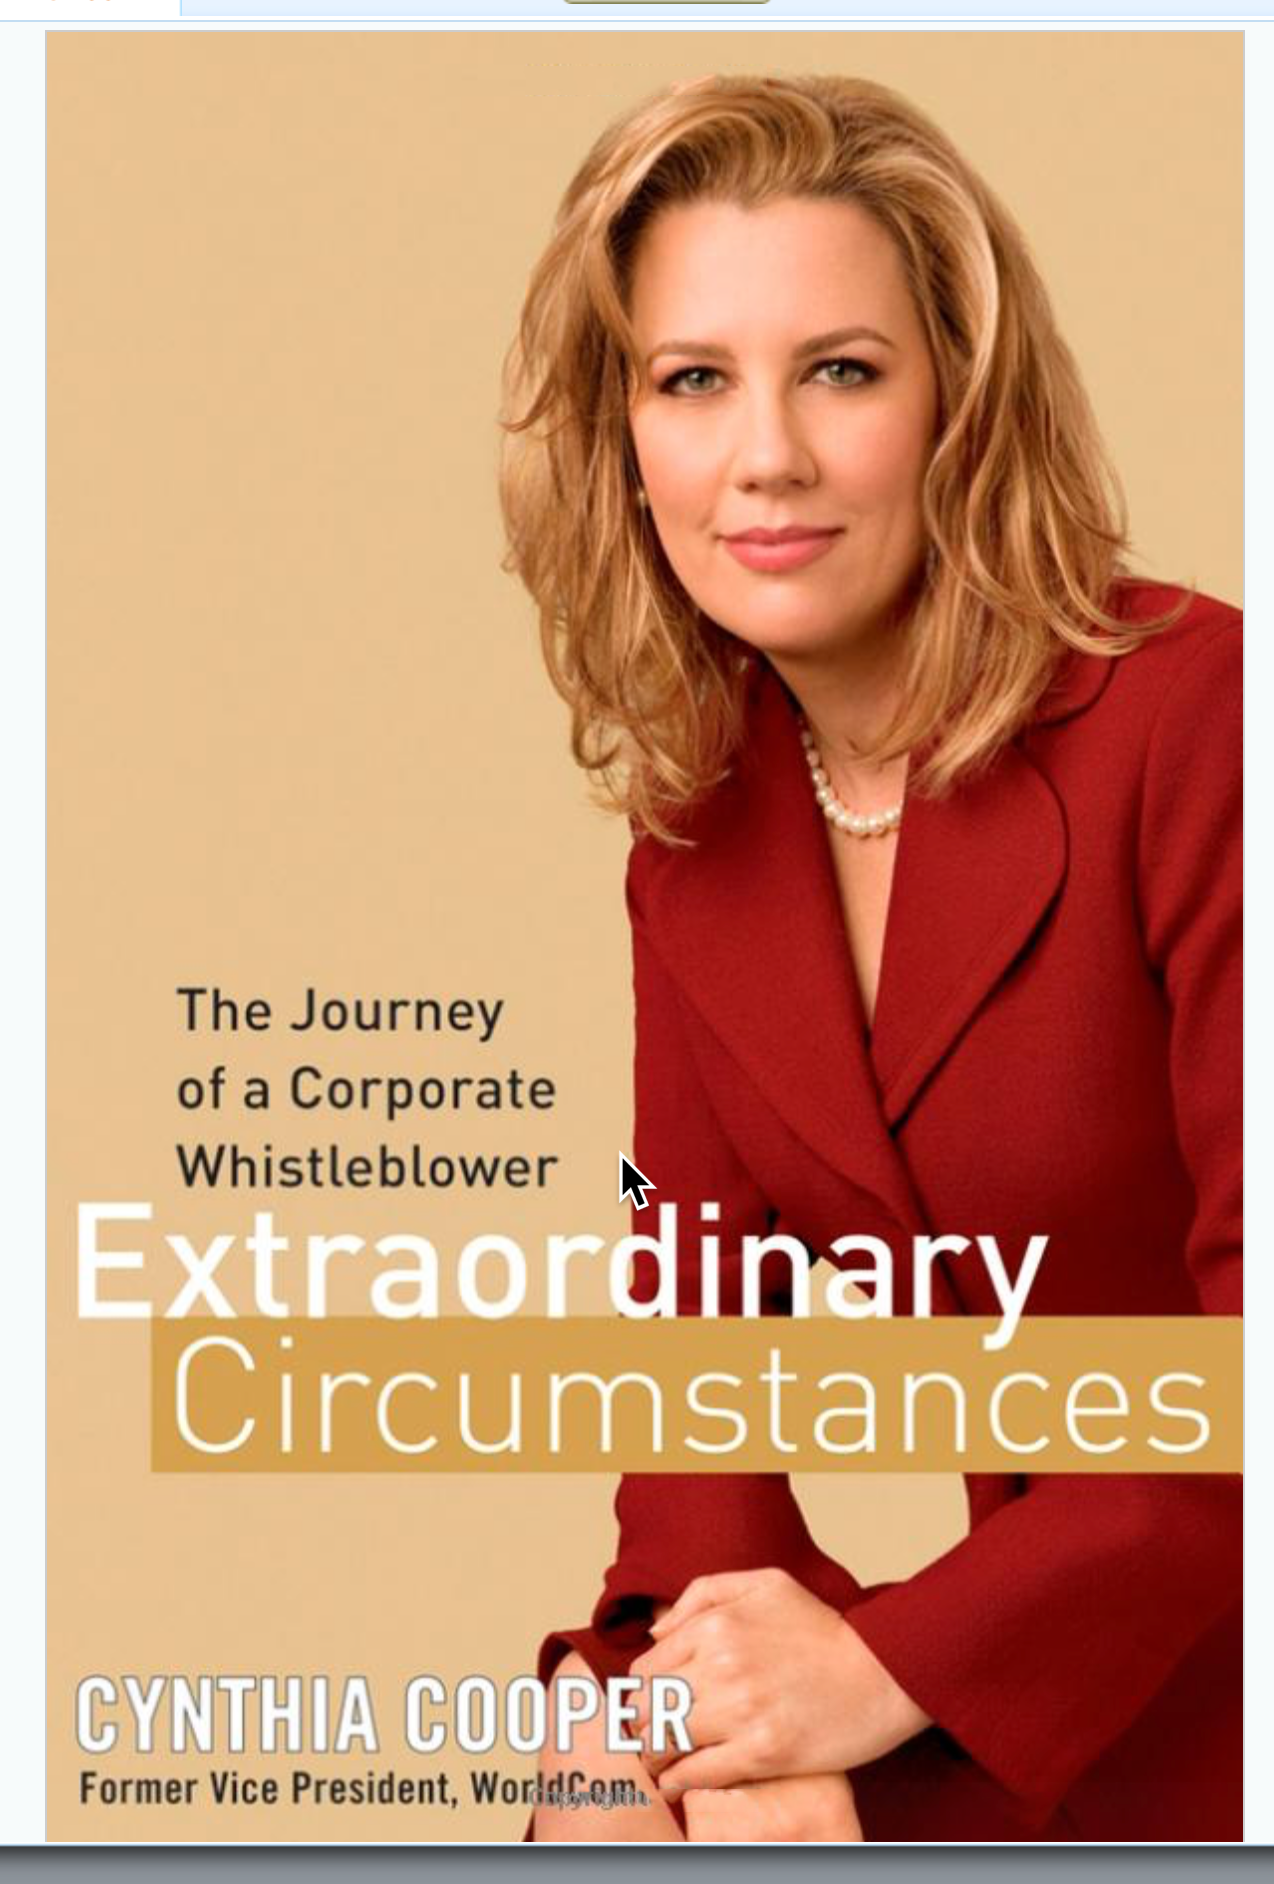 Extraordinary Circumstances: The Journey Of A Corporate Whistleblower – By Cynthia Cooper (former VP, WorldCom)